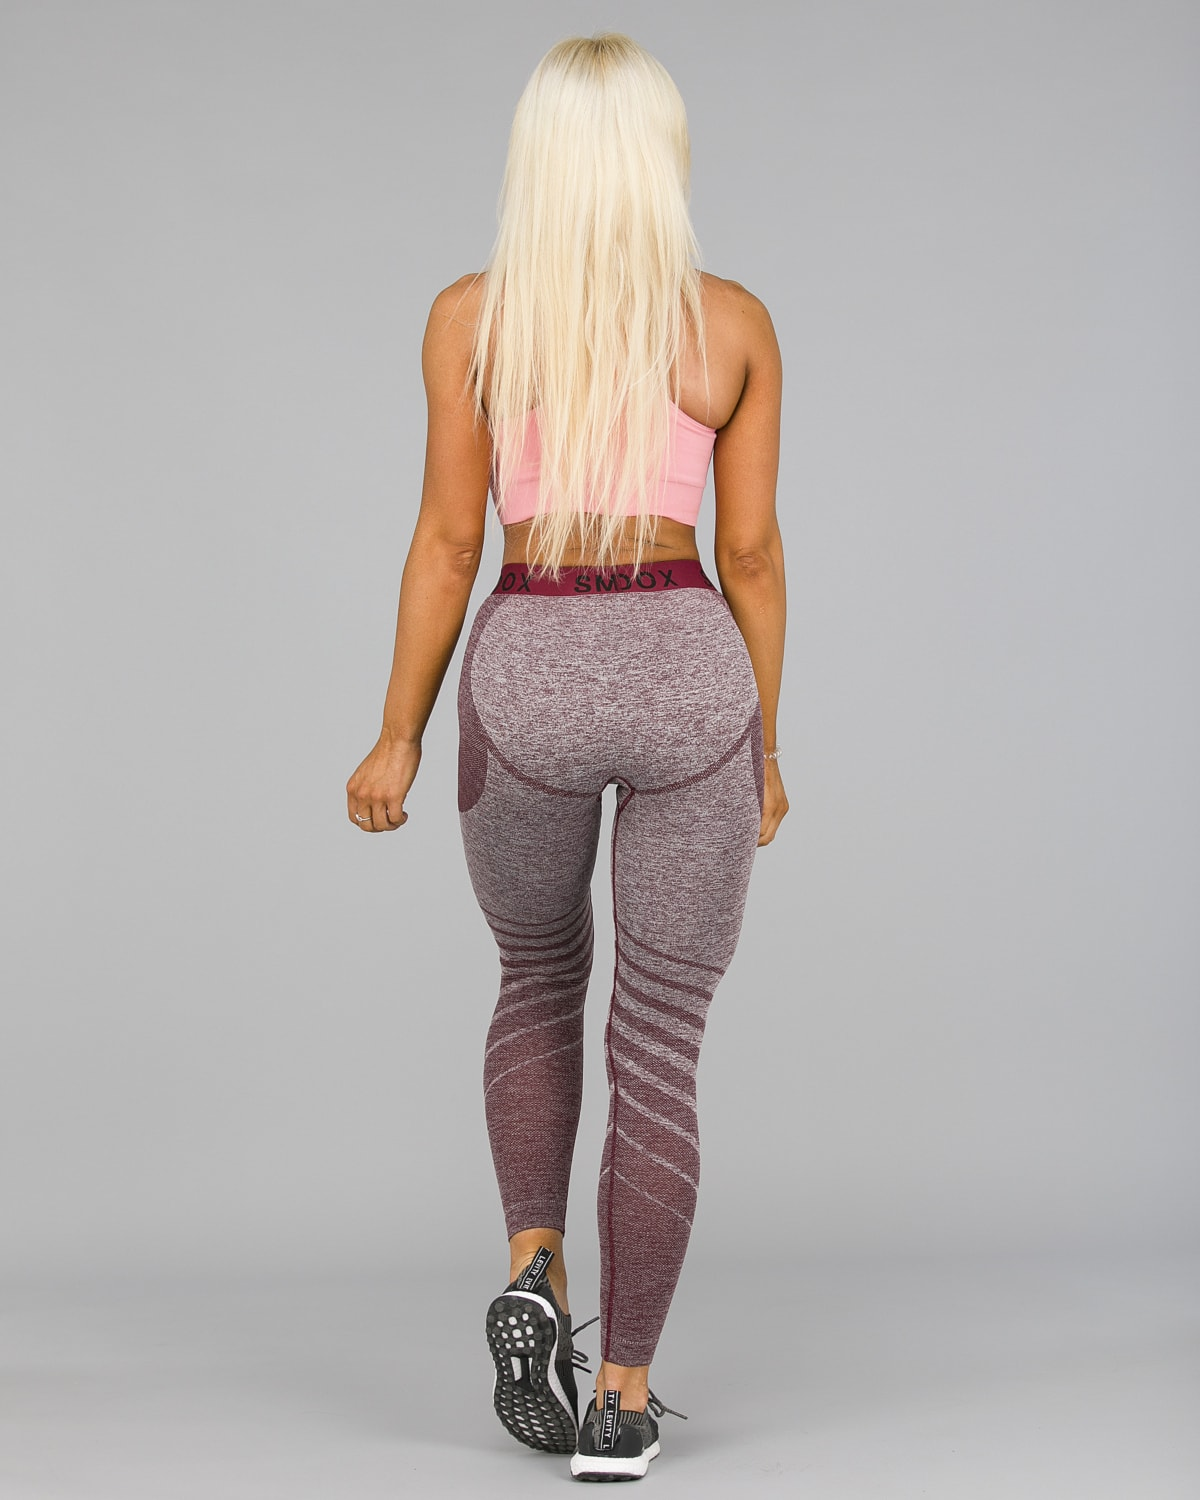 Smilodox – Vira Leggings – Bordeaux4